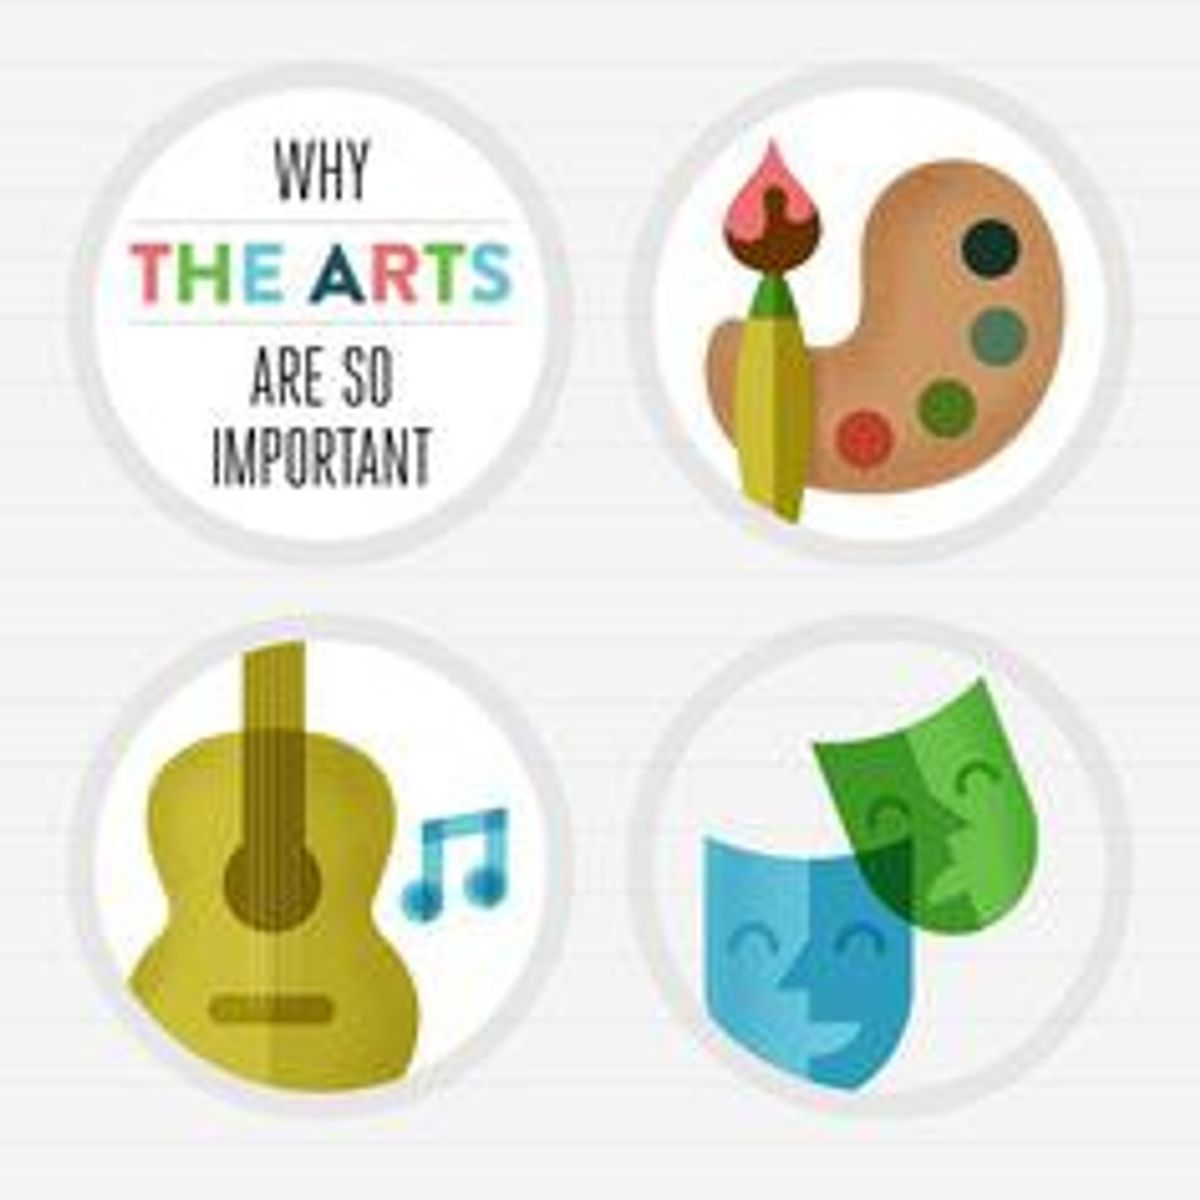 10 Reasons Why The Arts Are Important In Our Lives